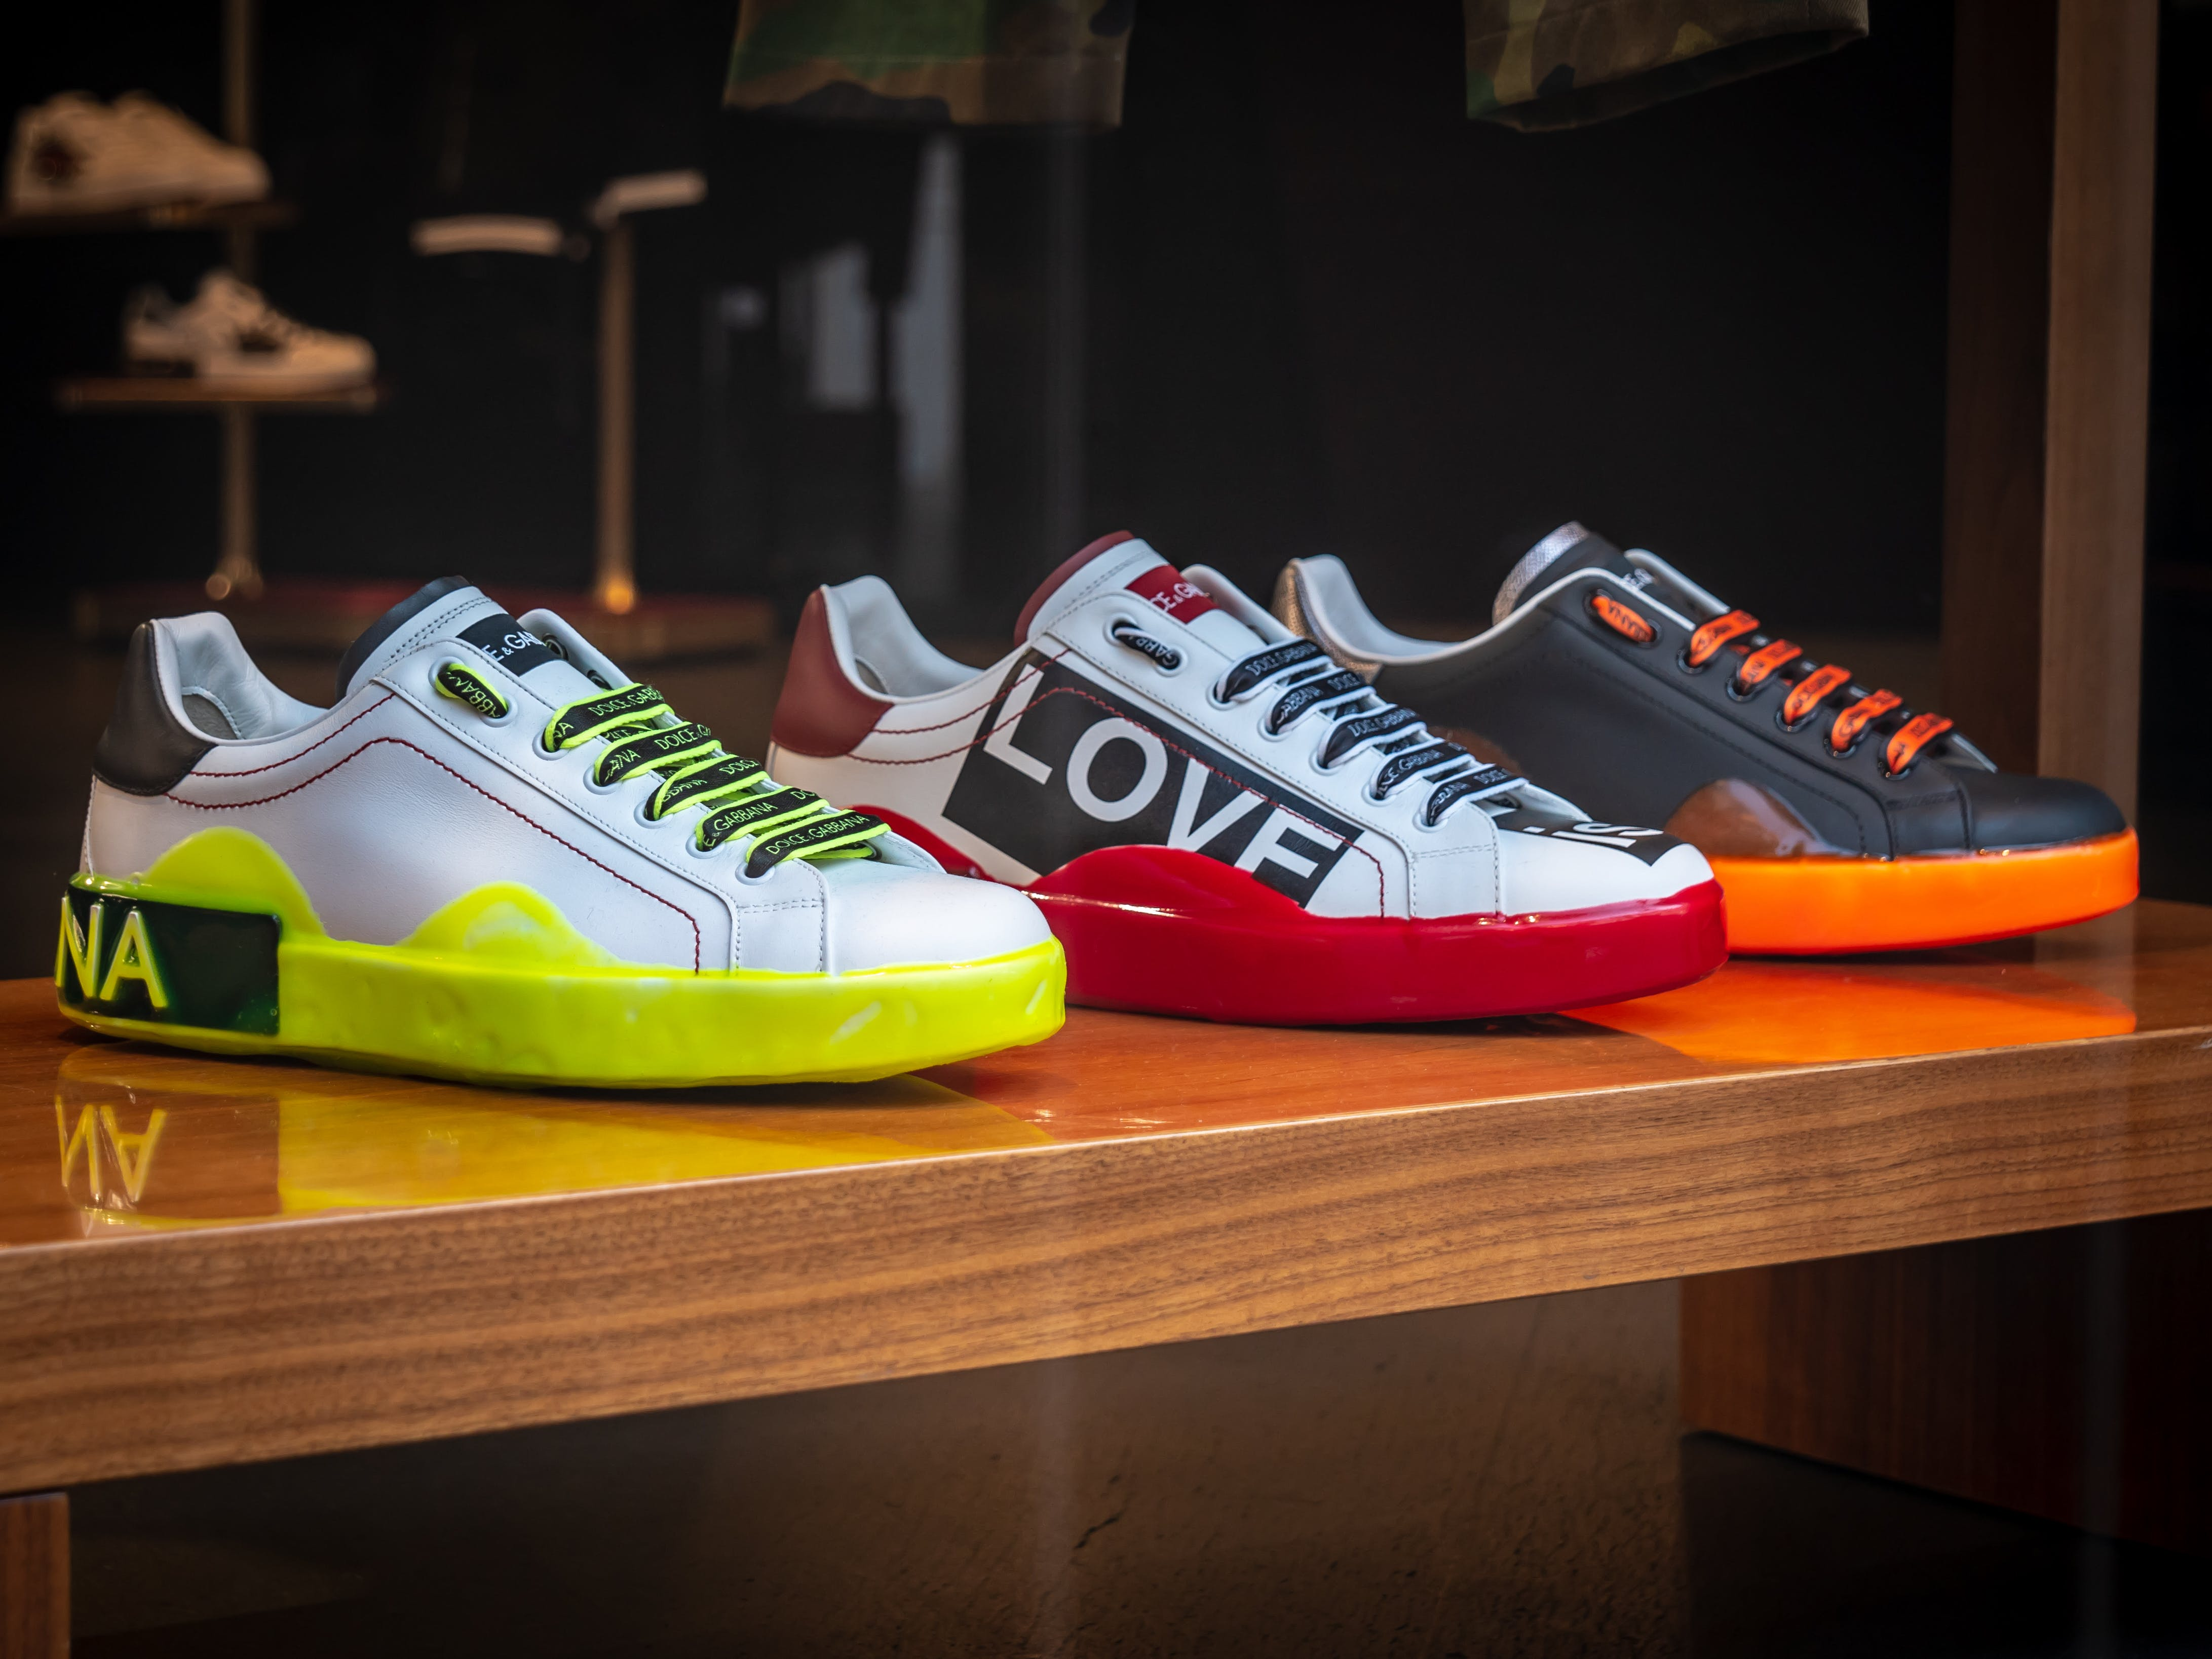 Three Unpaired Multicolored Leather Sneakers on Display